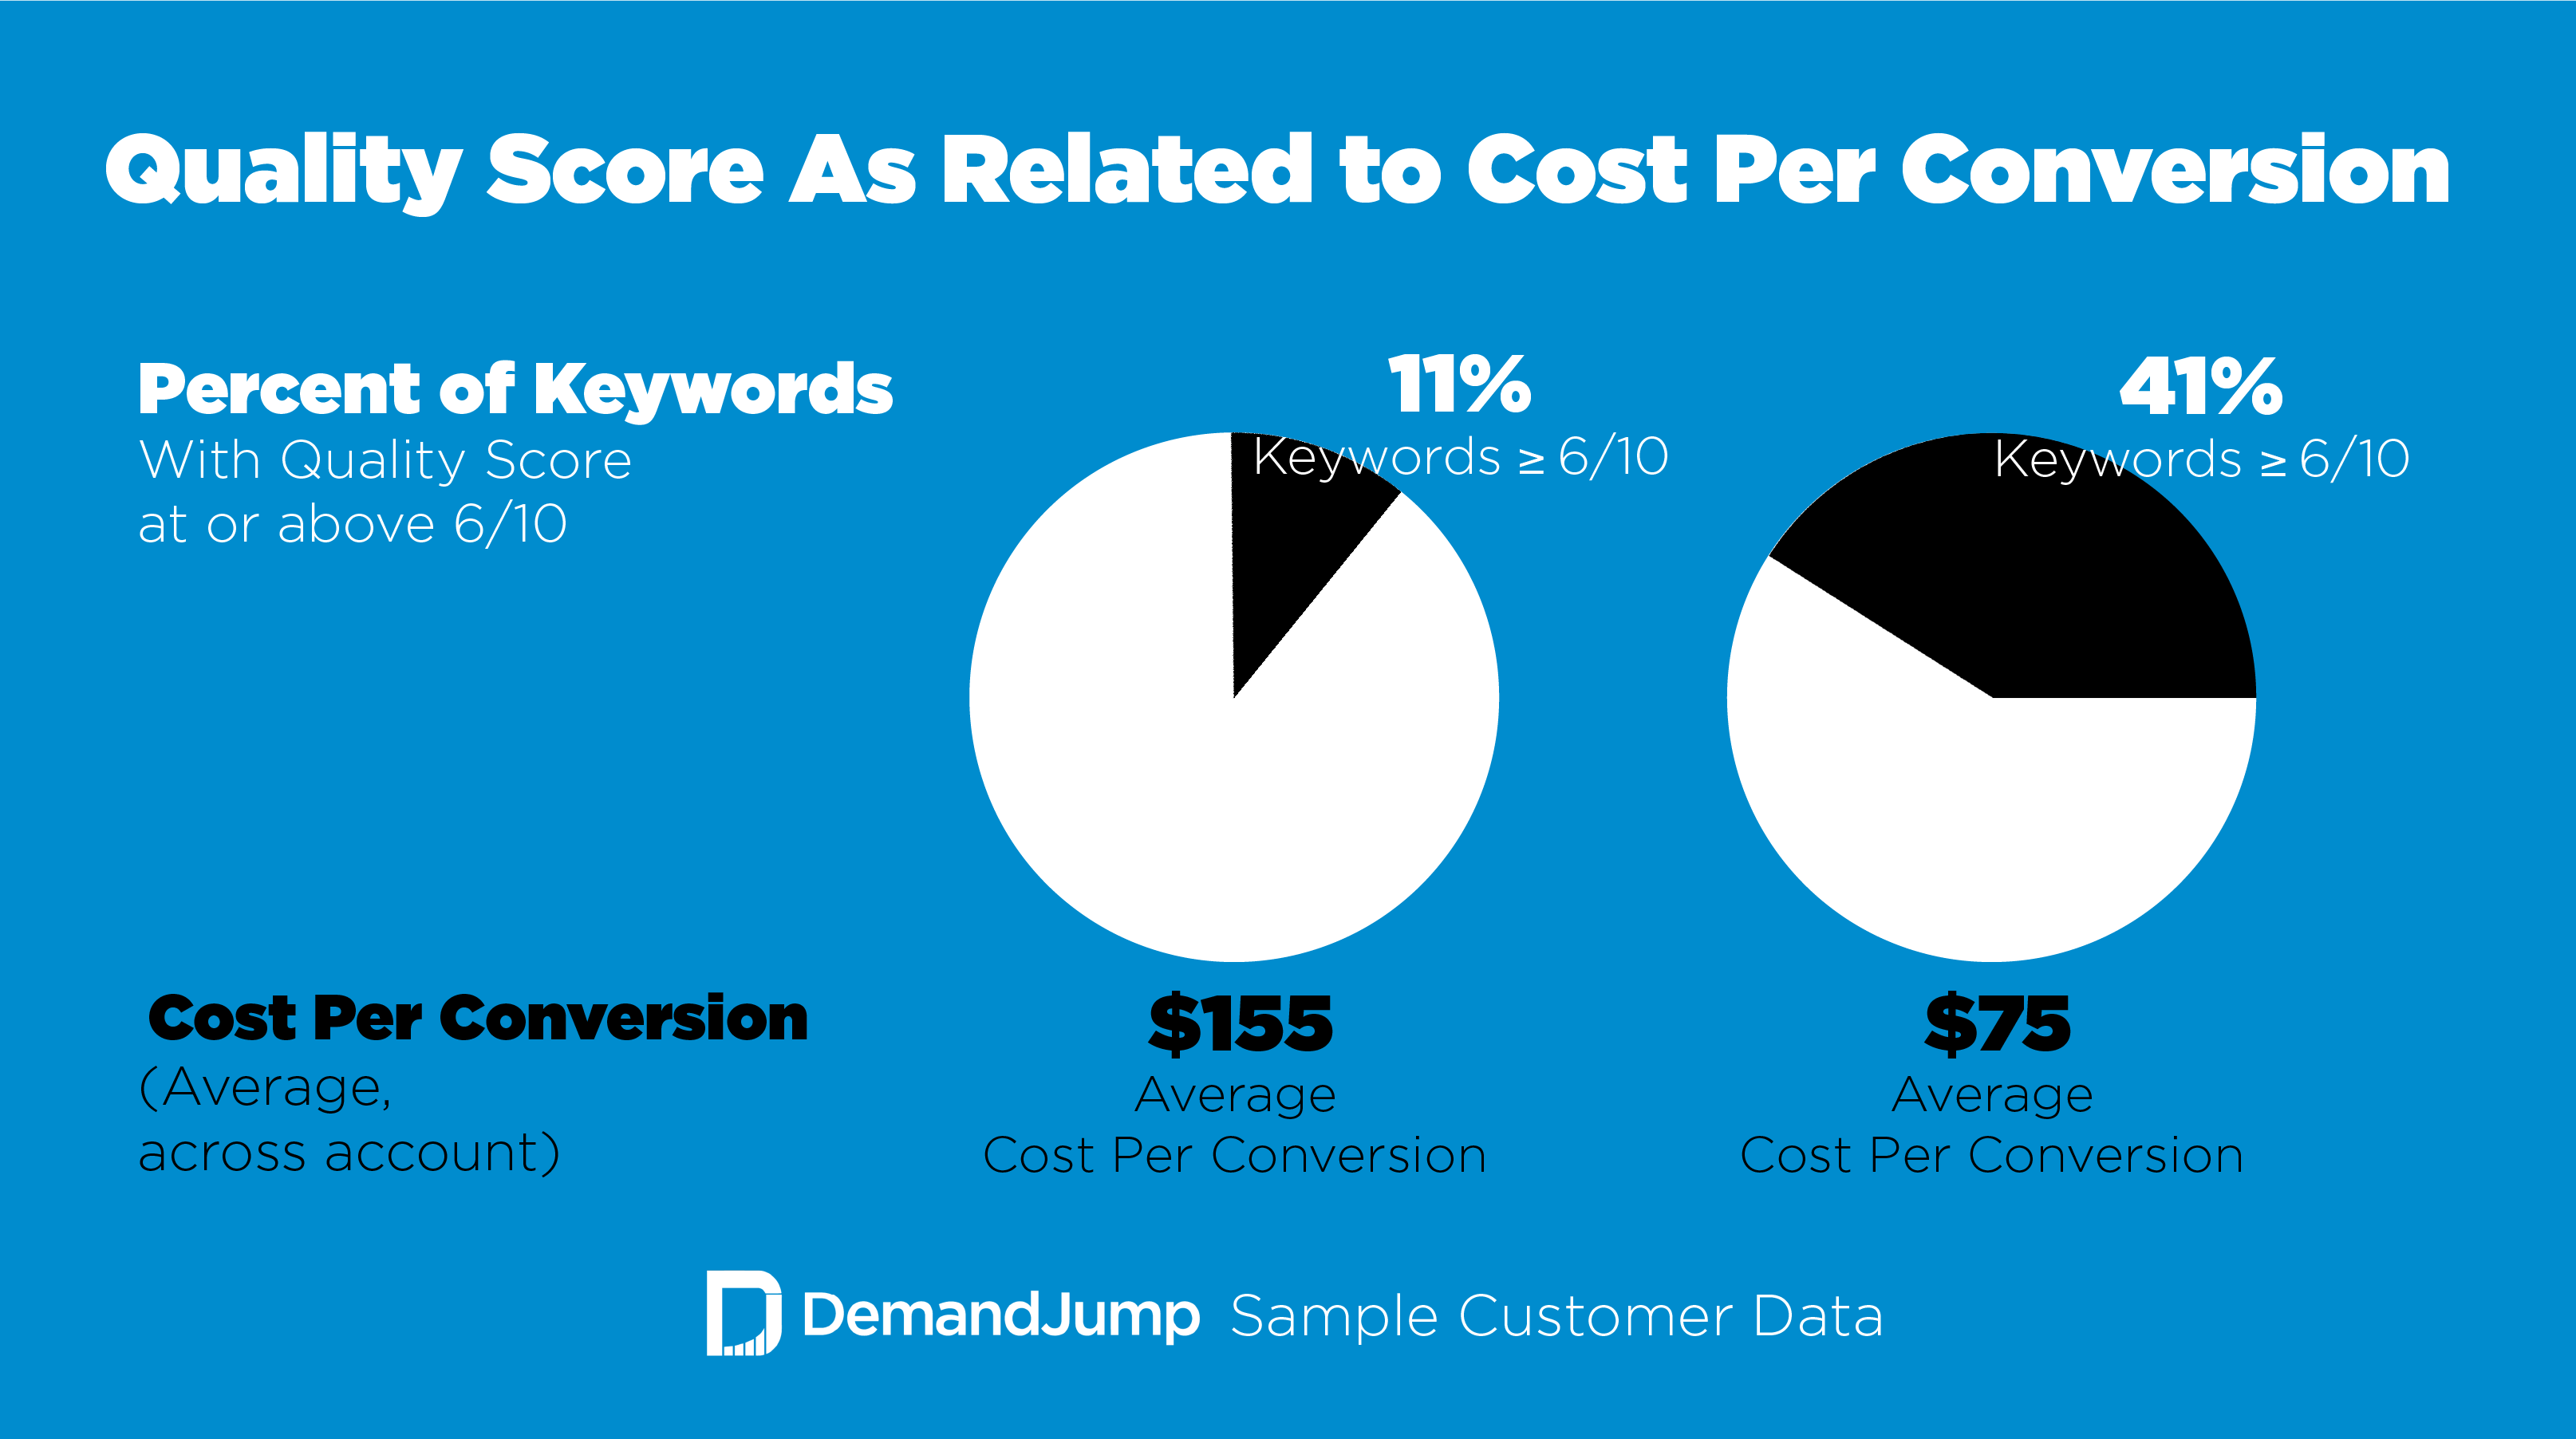 Quality Score vs. Cost Per Conversion